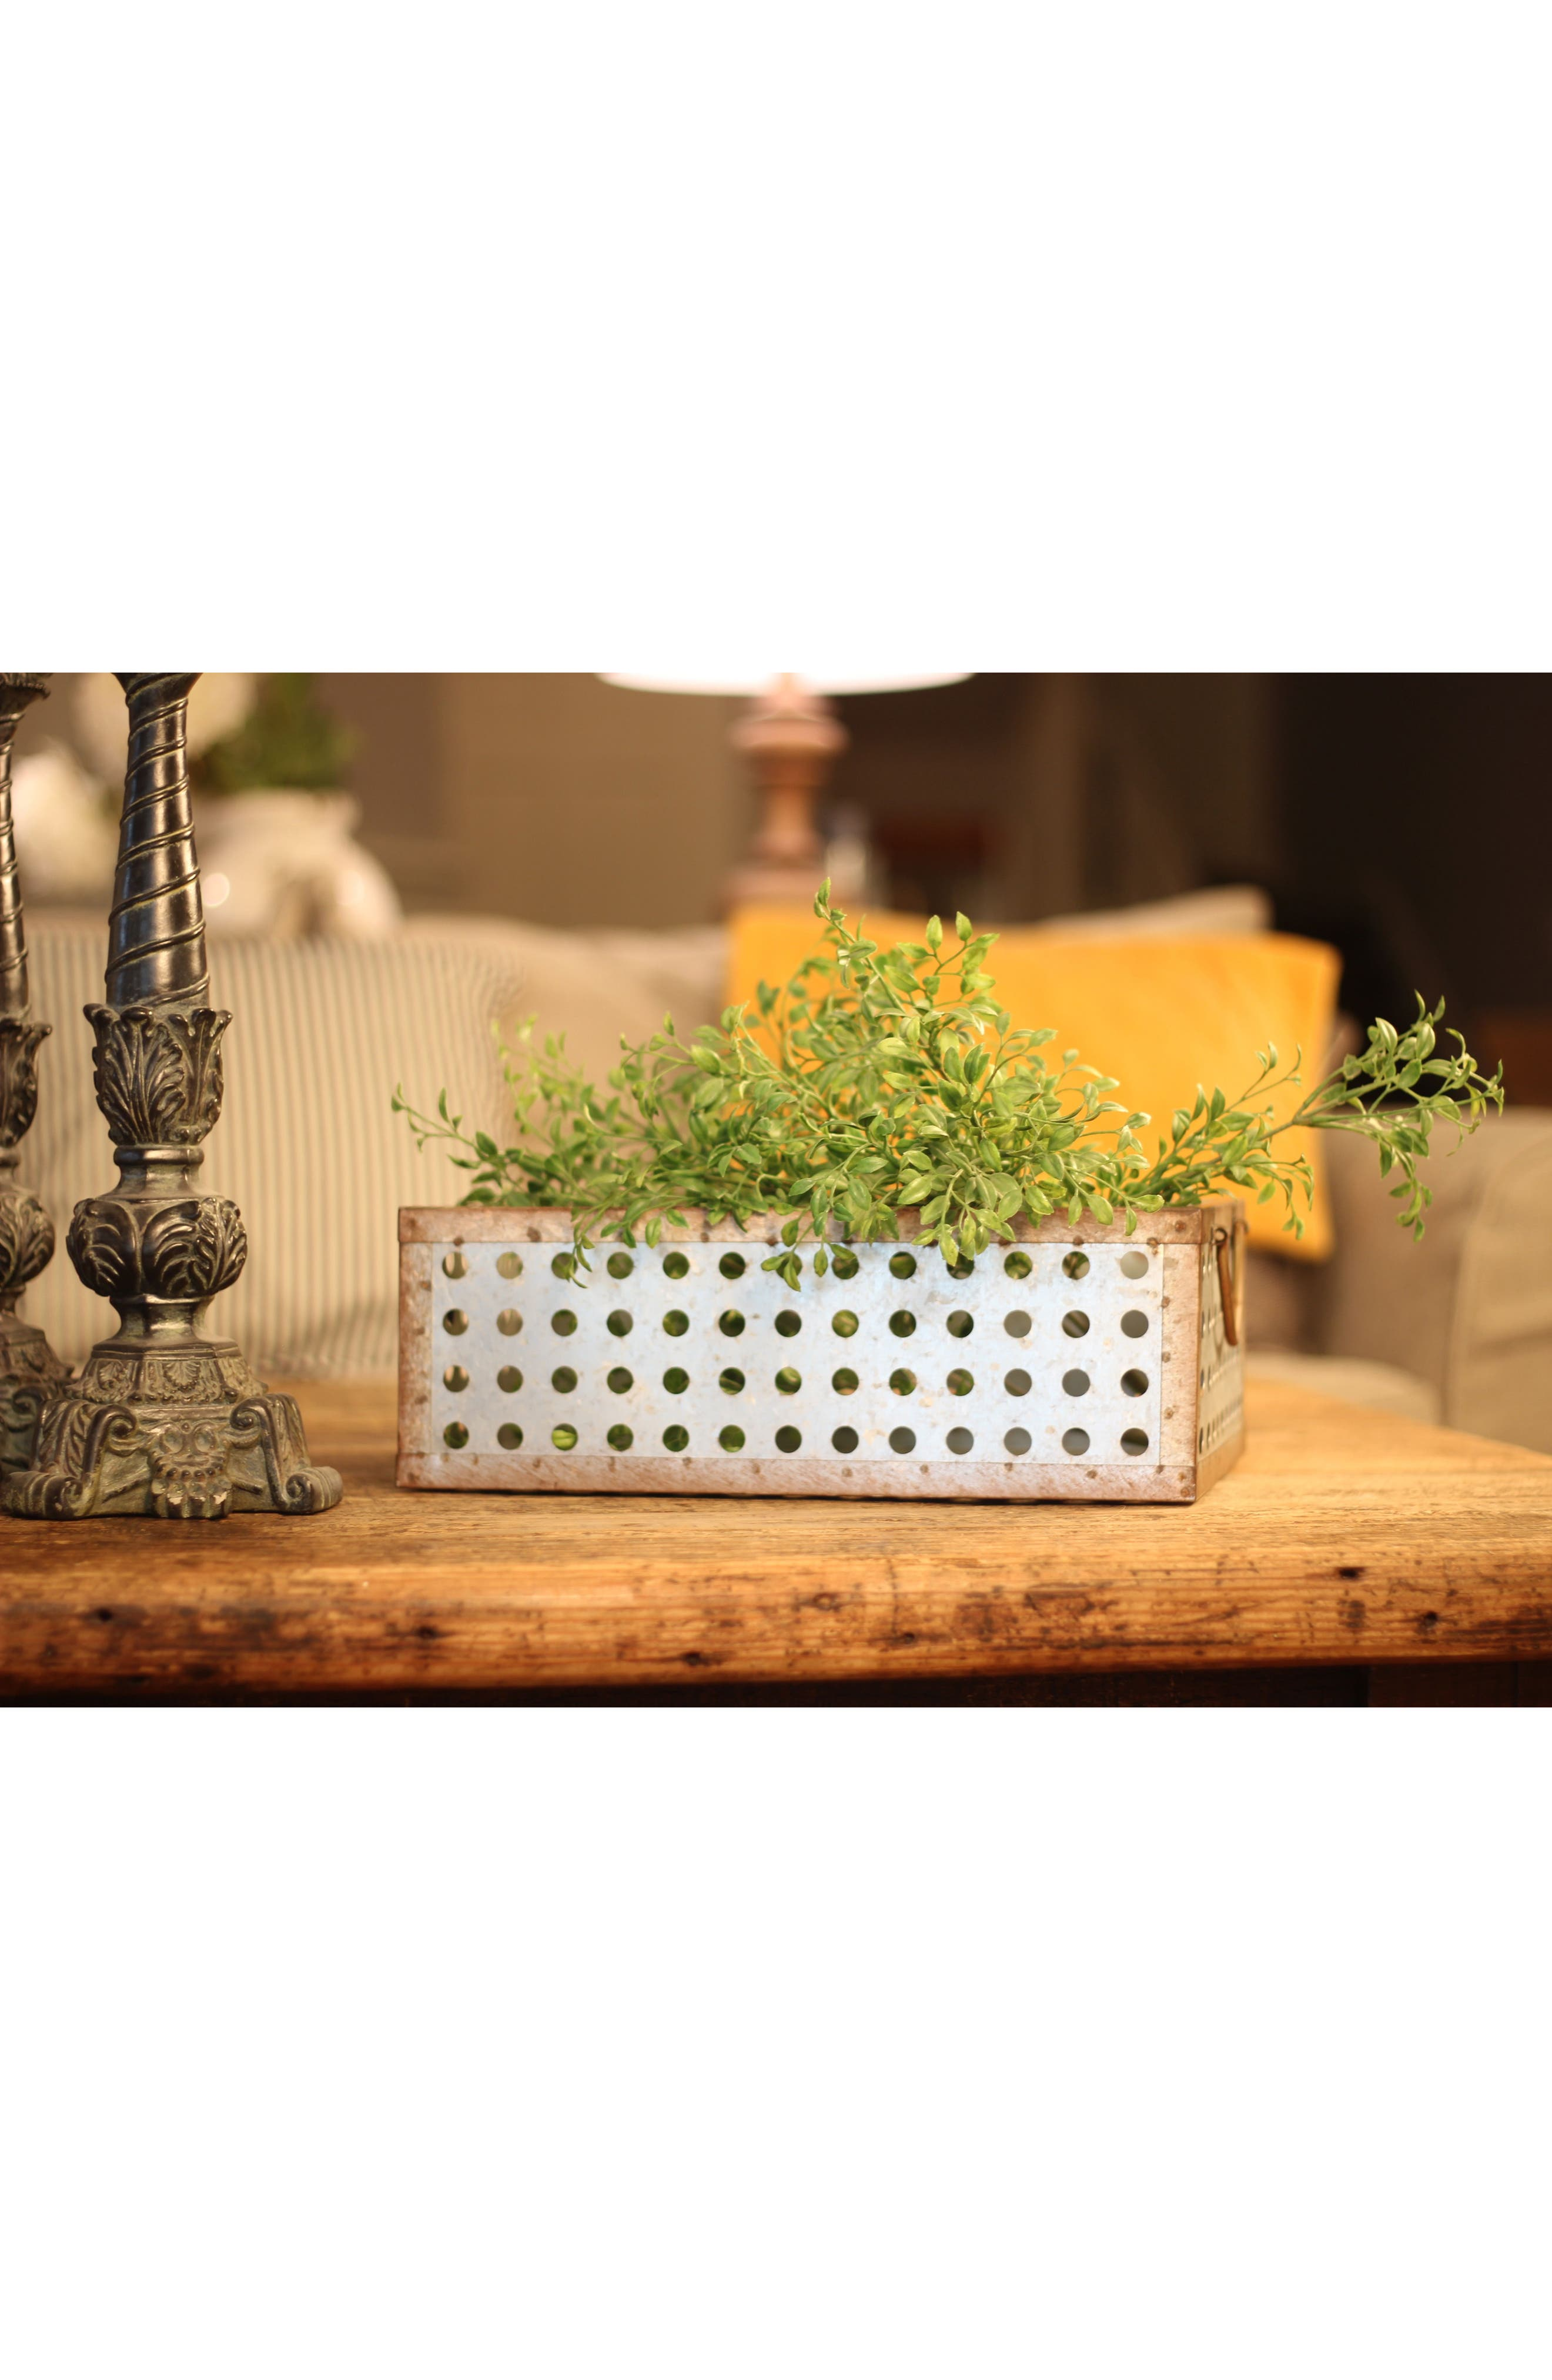 Set of 3 Perforated Baskets,                             Alternate thumbnail 2, color,                             METAL